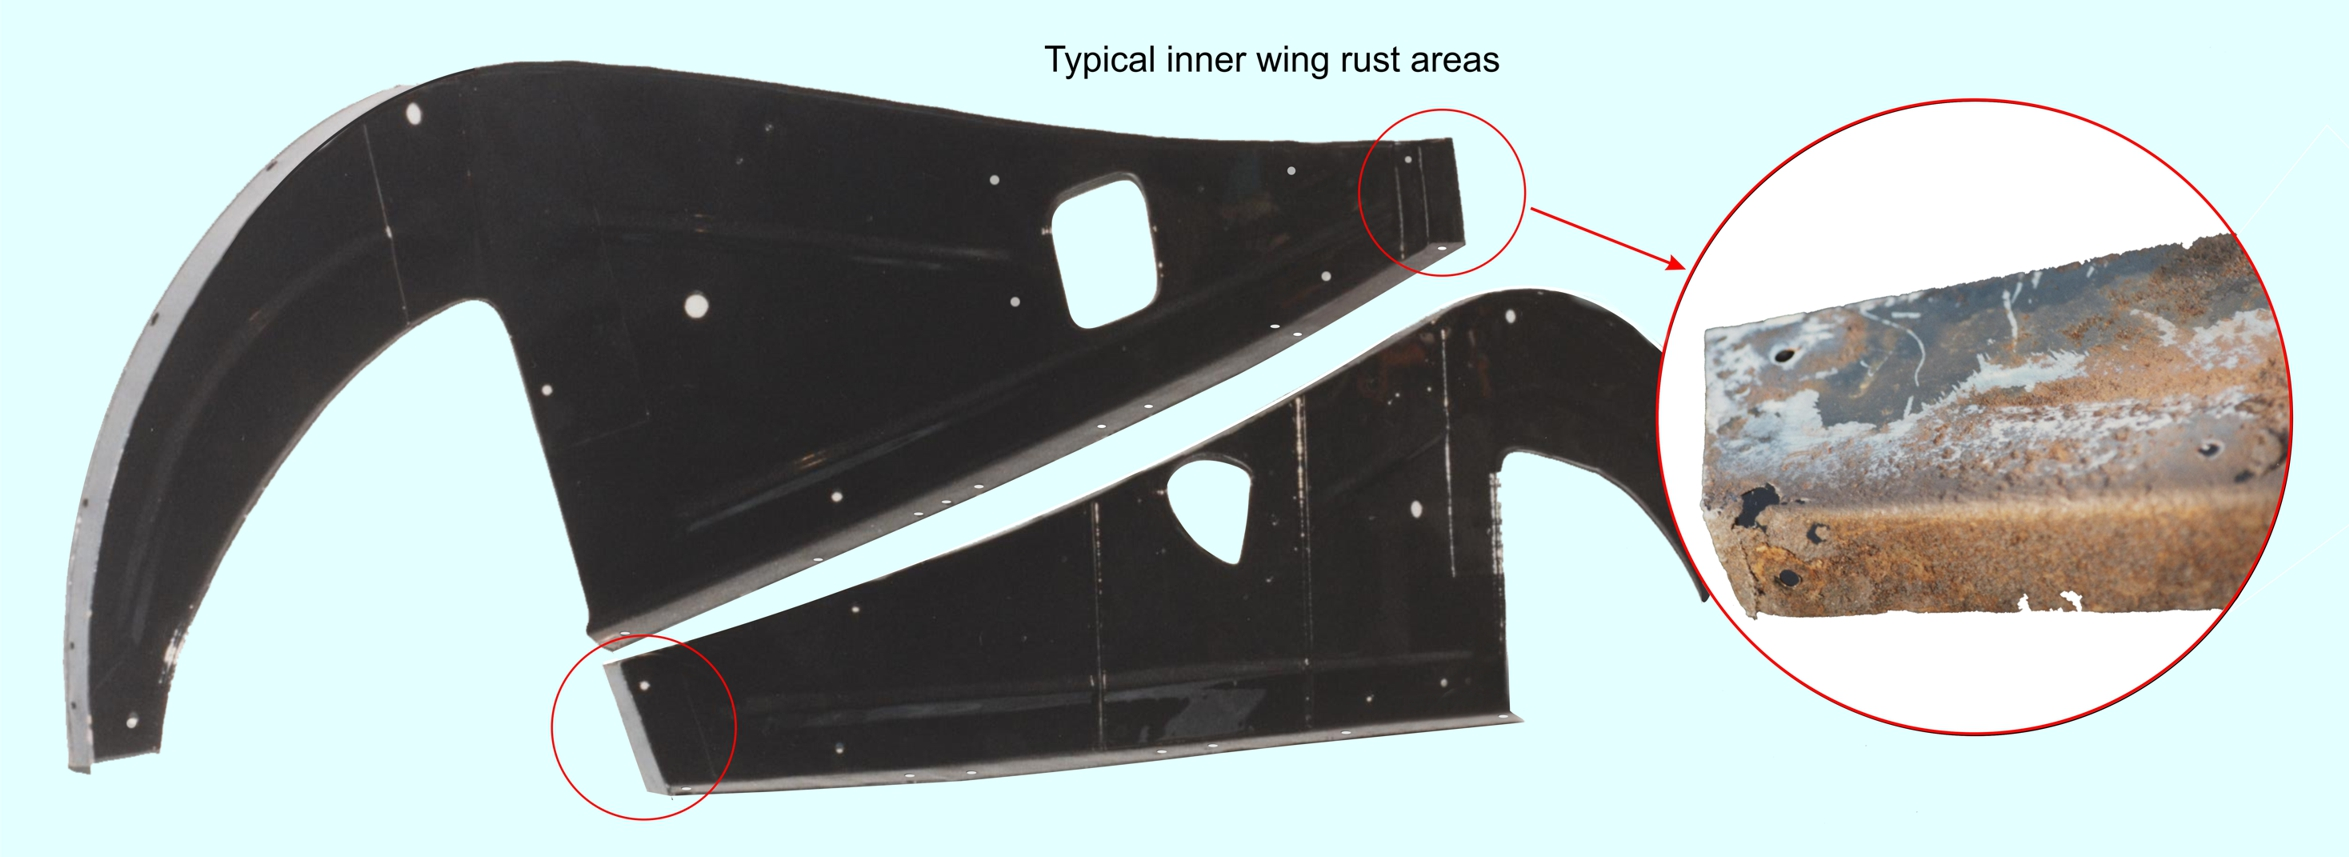 Typical inner wing rust